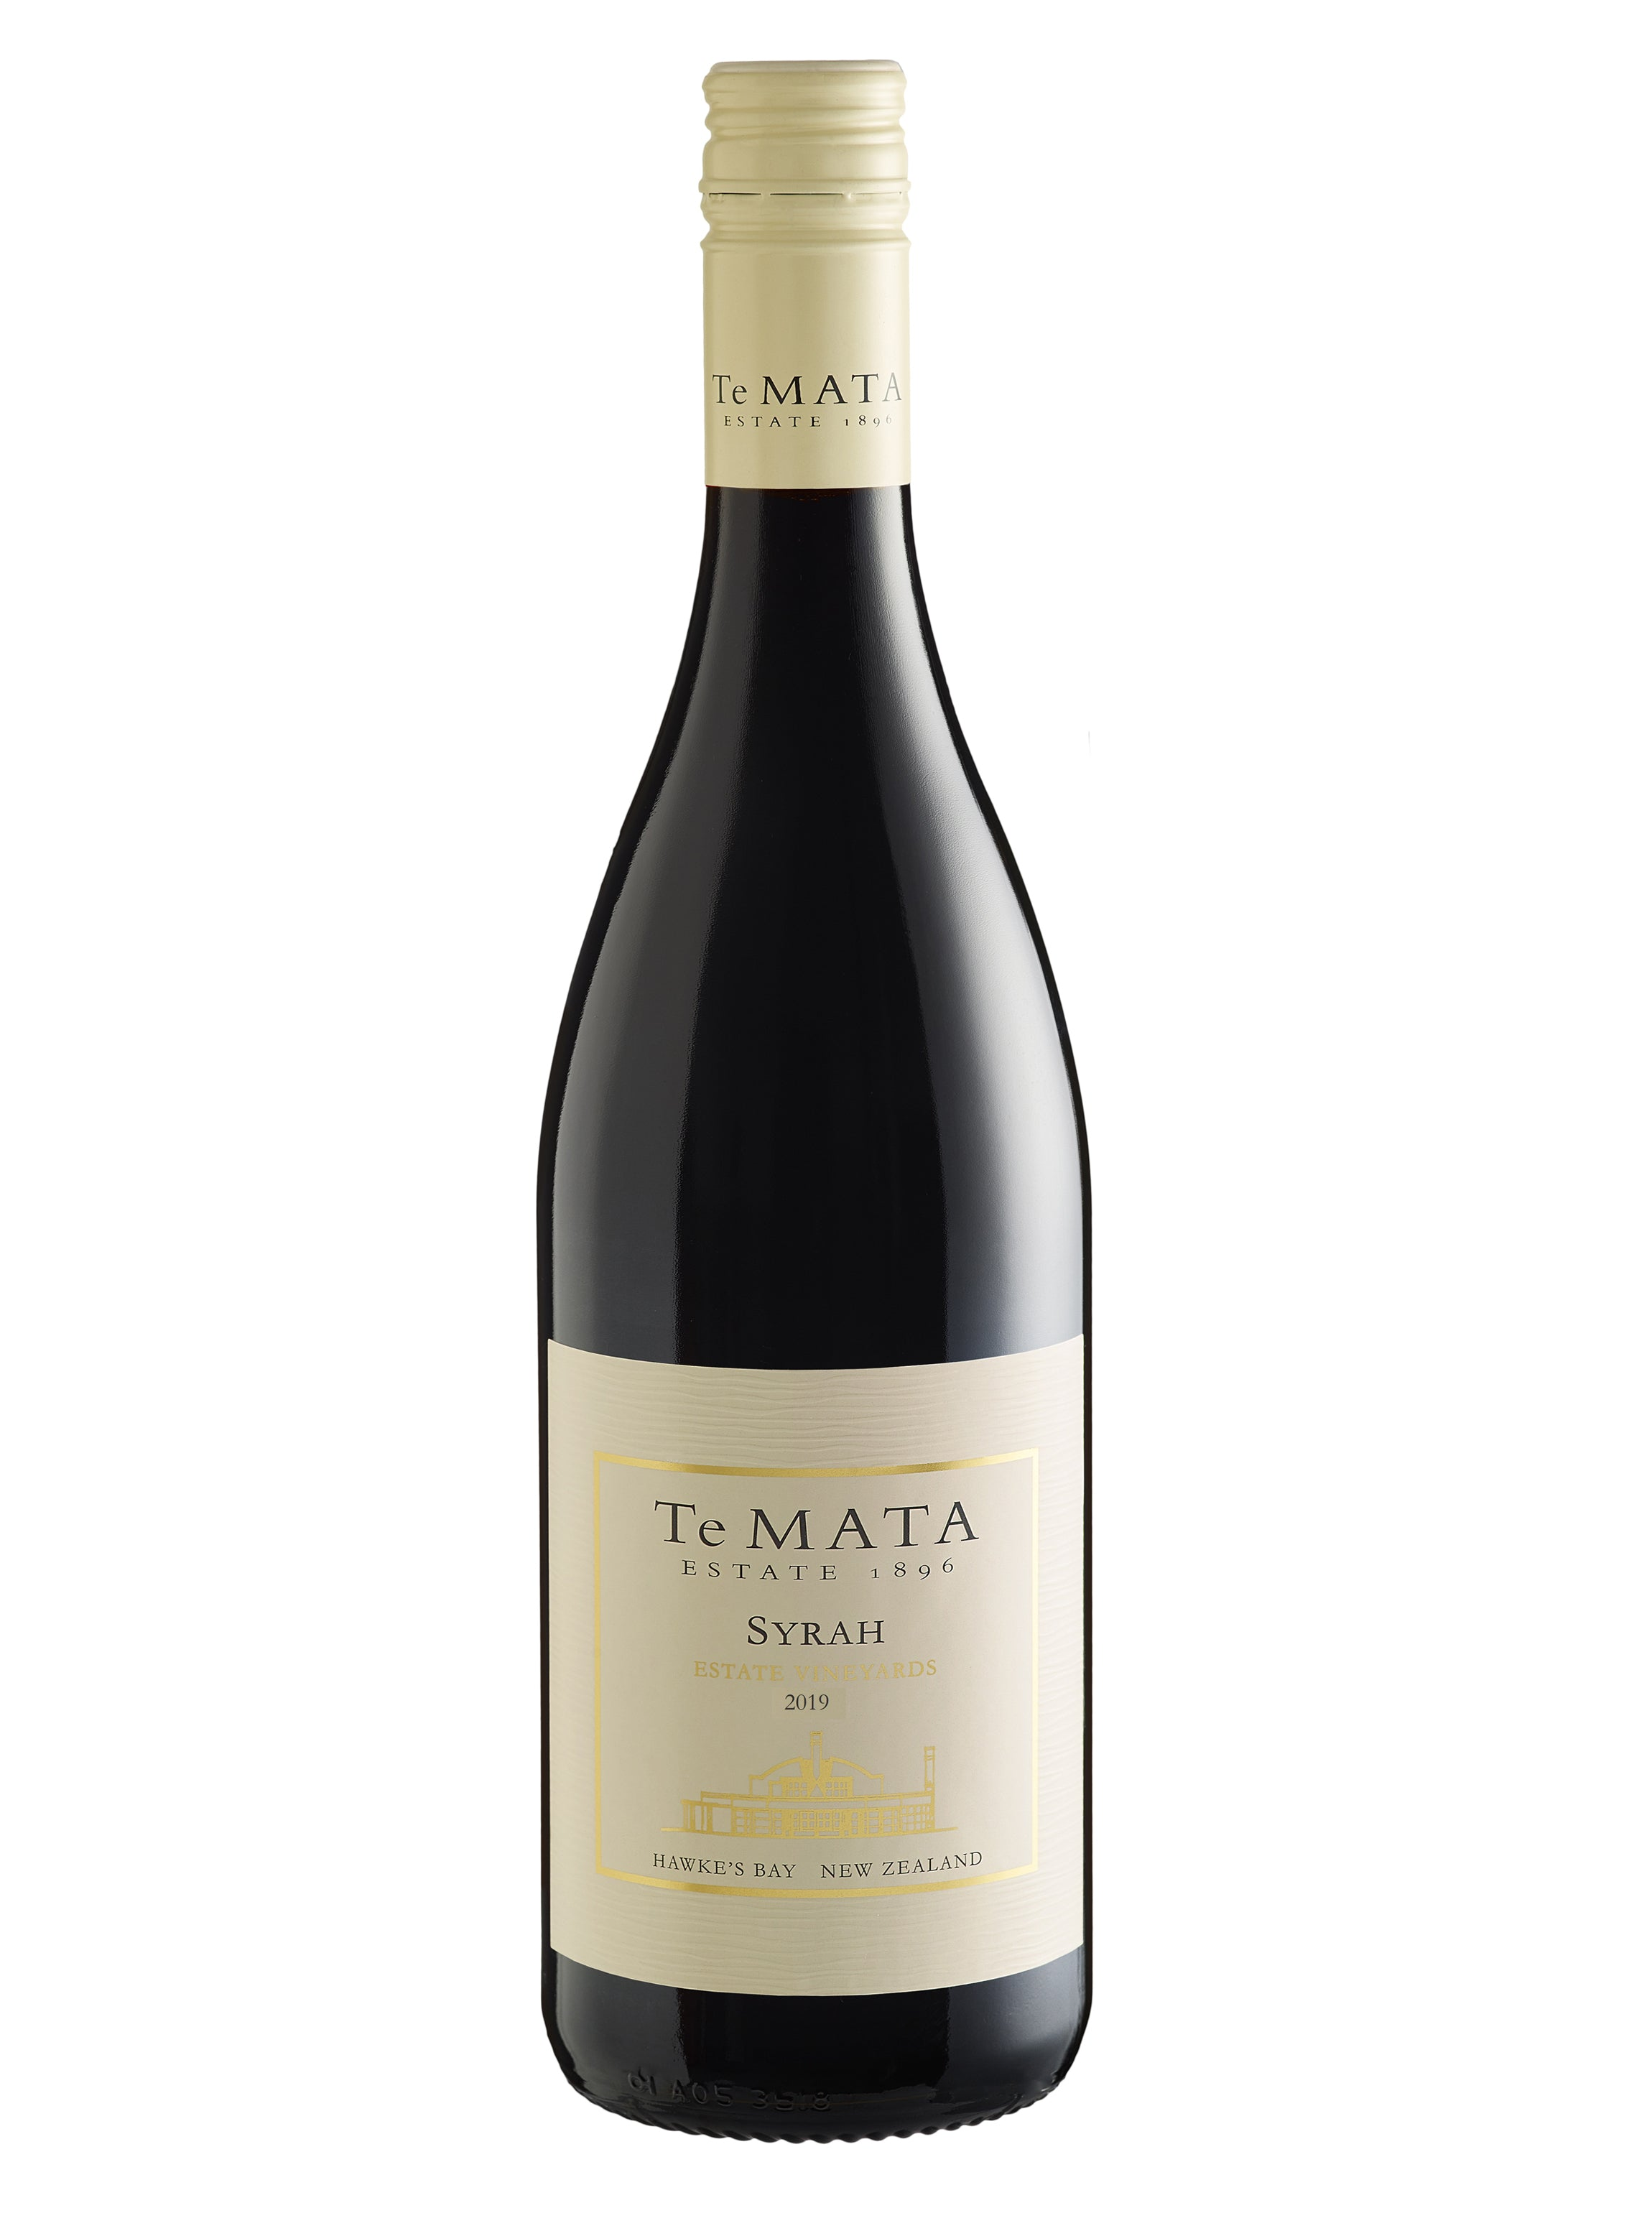 Te Mata Estate Syrah, Syrah, Hawke's Bay, New Zealand Winery, New Zealand Wine, Wine and Food, Auckland Restaurant Month, Auckland Wine Events, New Zealand Wine Events, Winetopia, Online Wine Shop, New Zealand Wine Shop